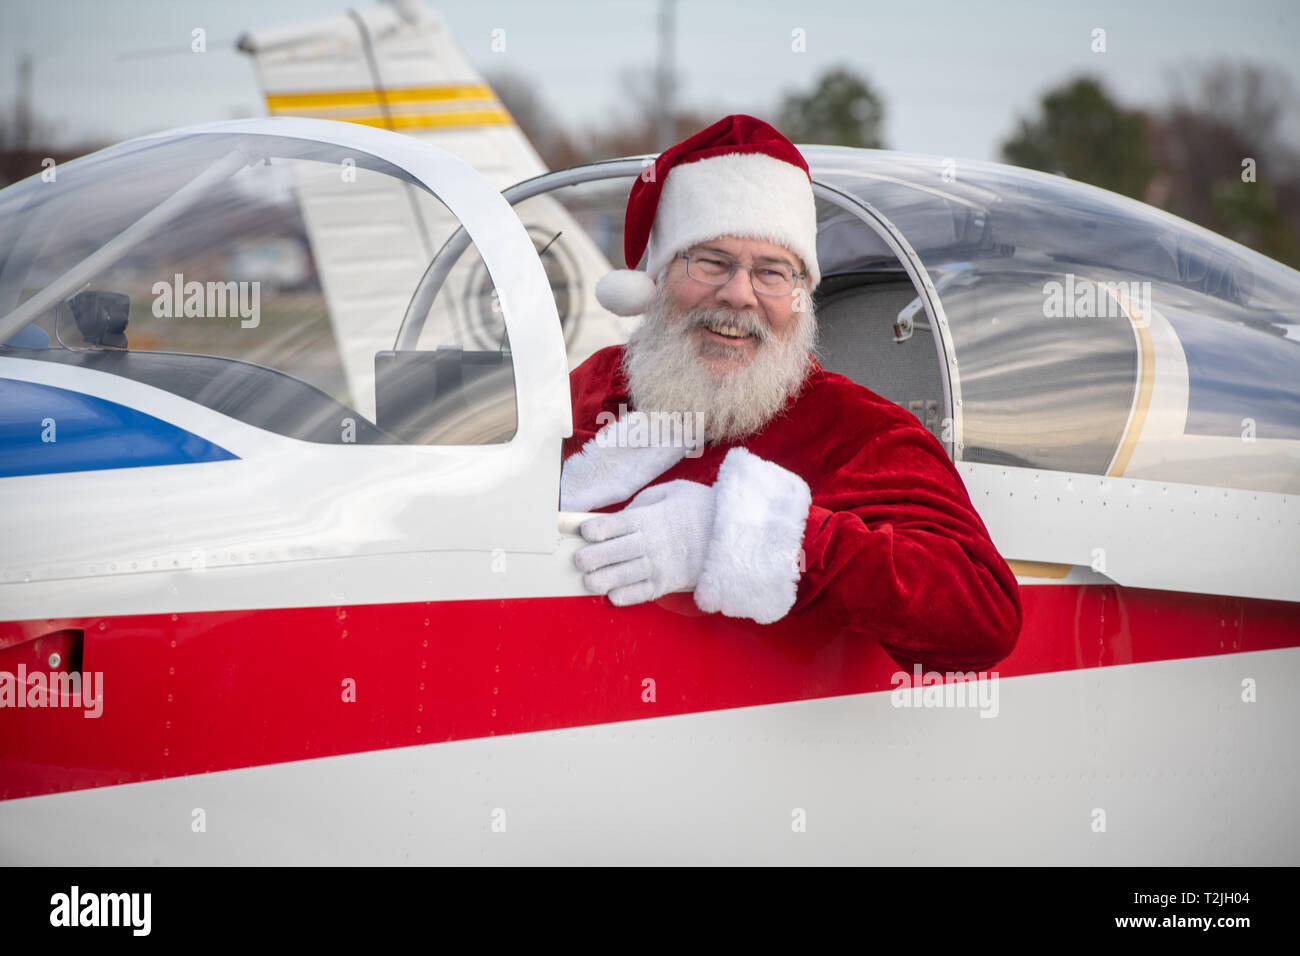 Santa leans out of side of private aircraft and lets out a smile, Tangier, Virginia - Stock Image